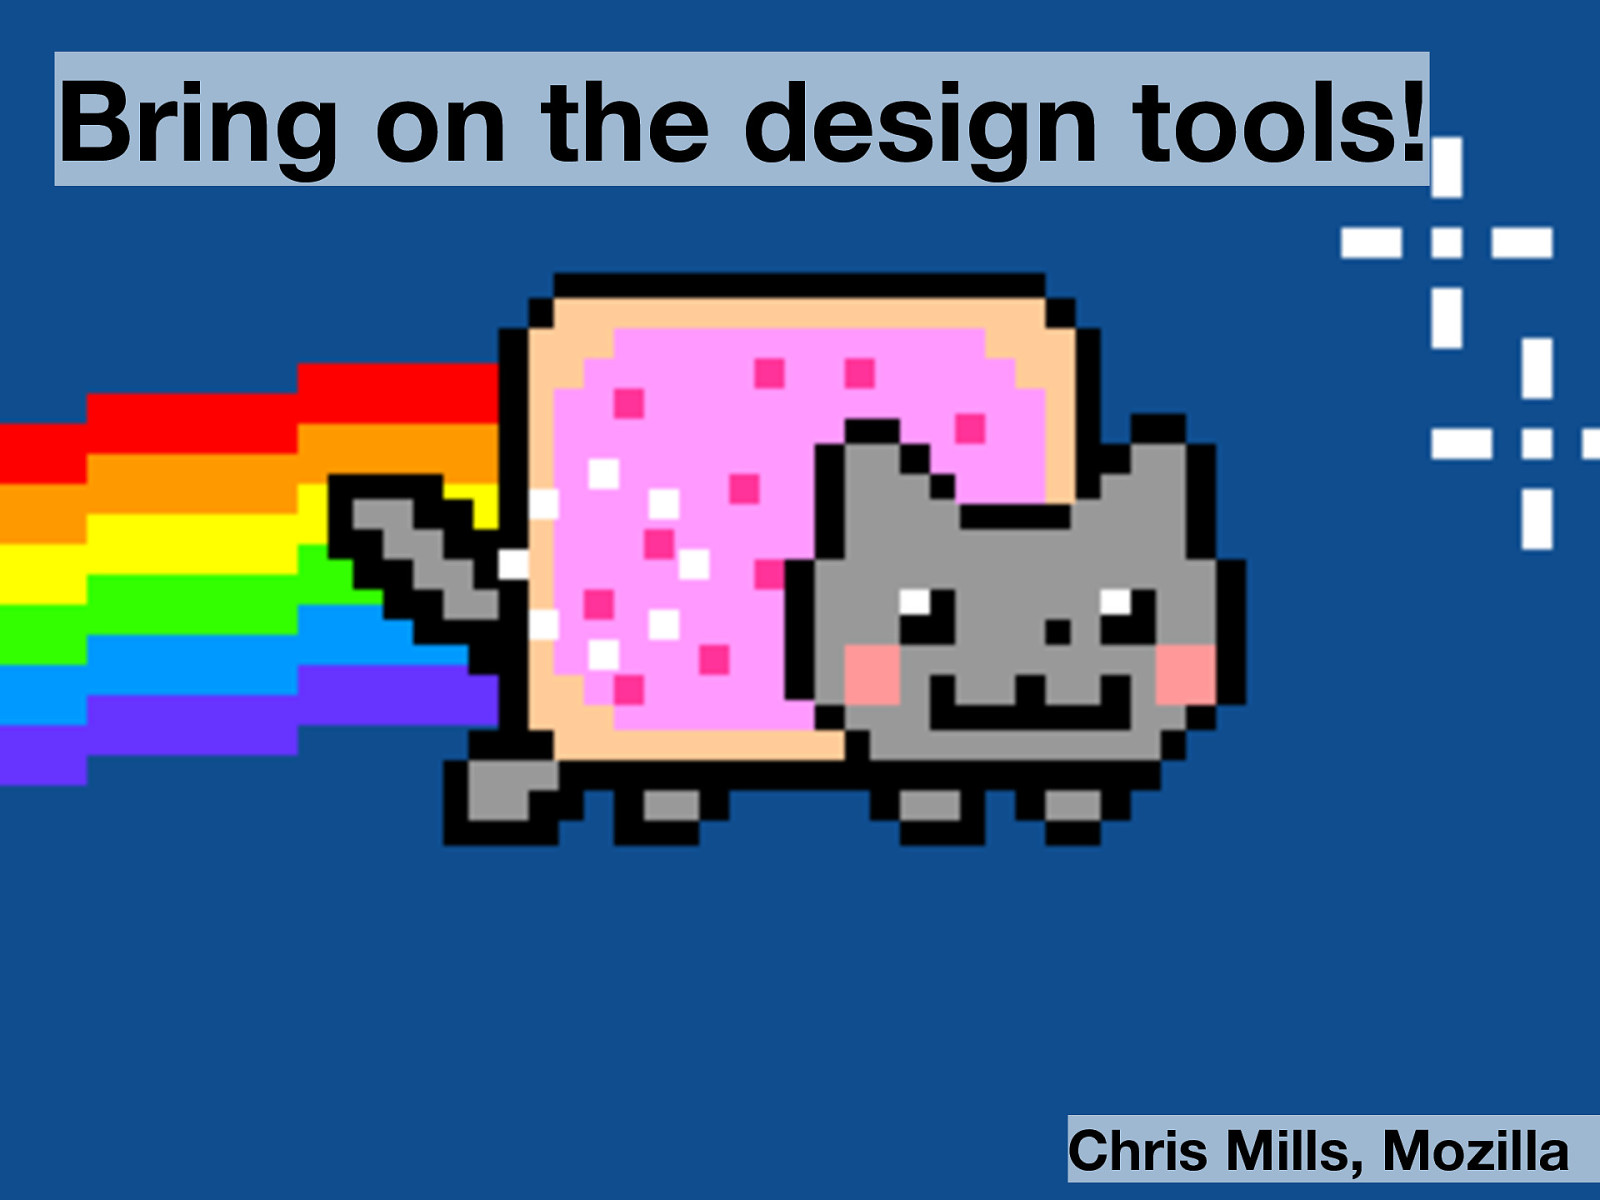 Bring on the design tools